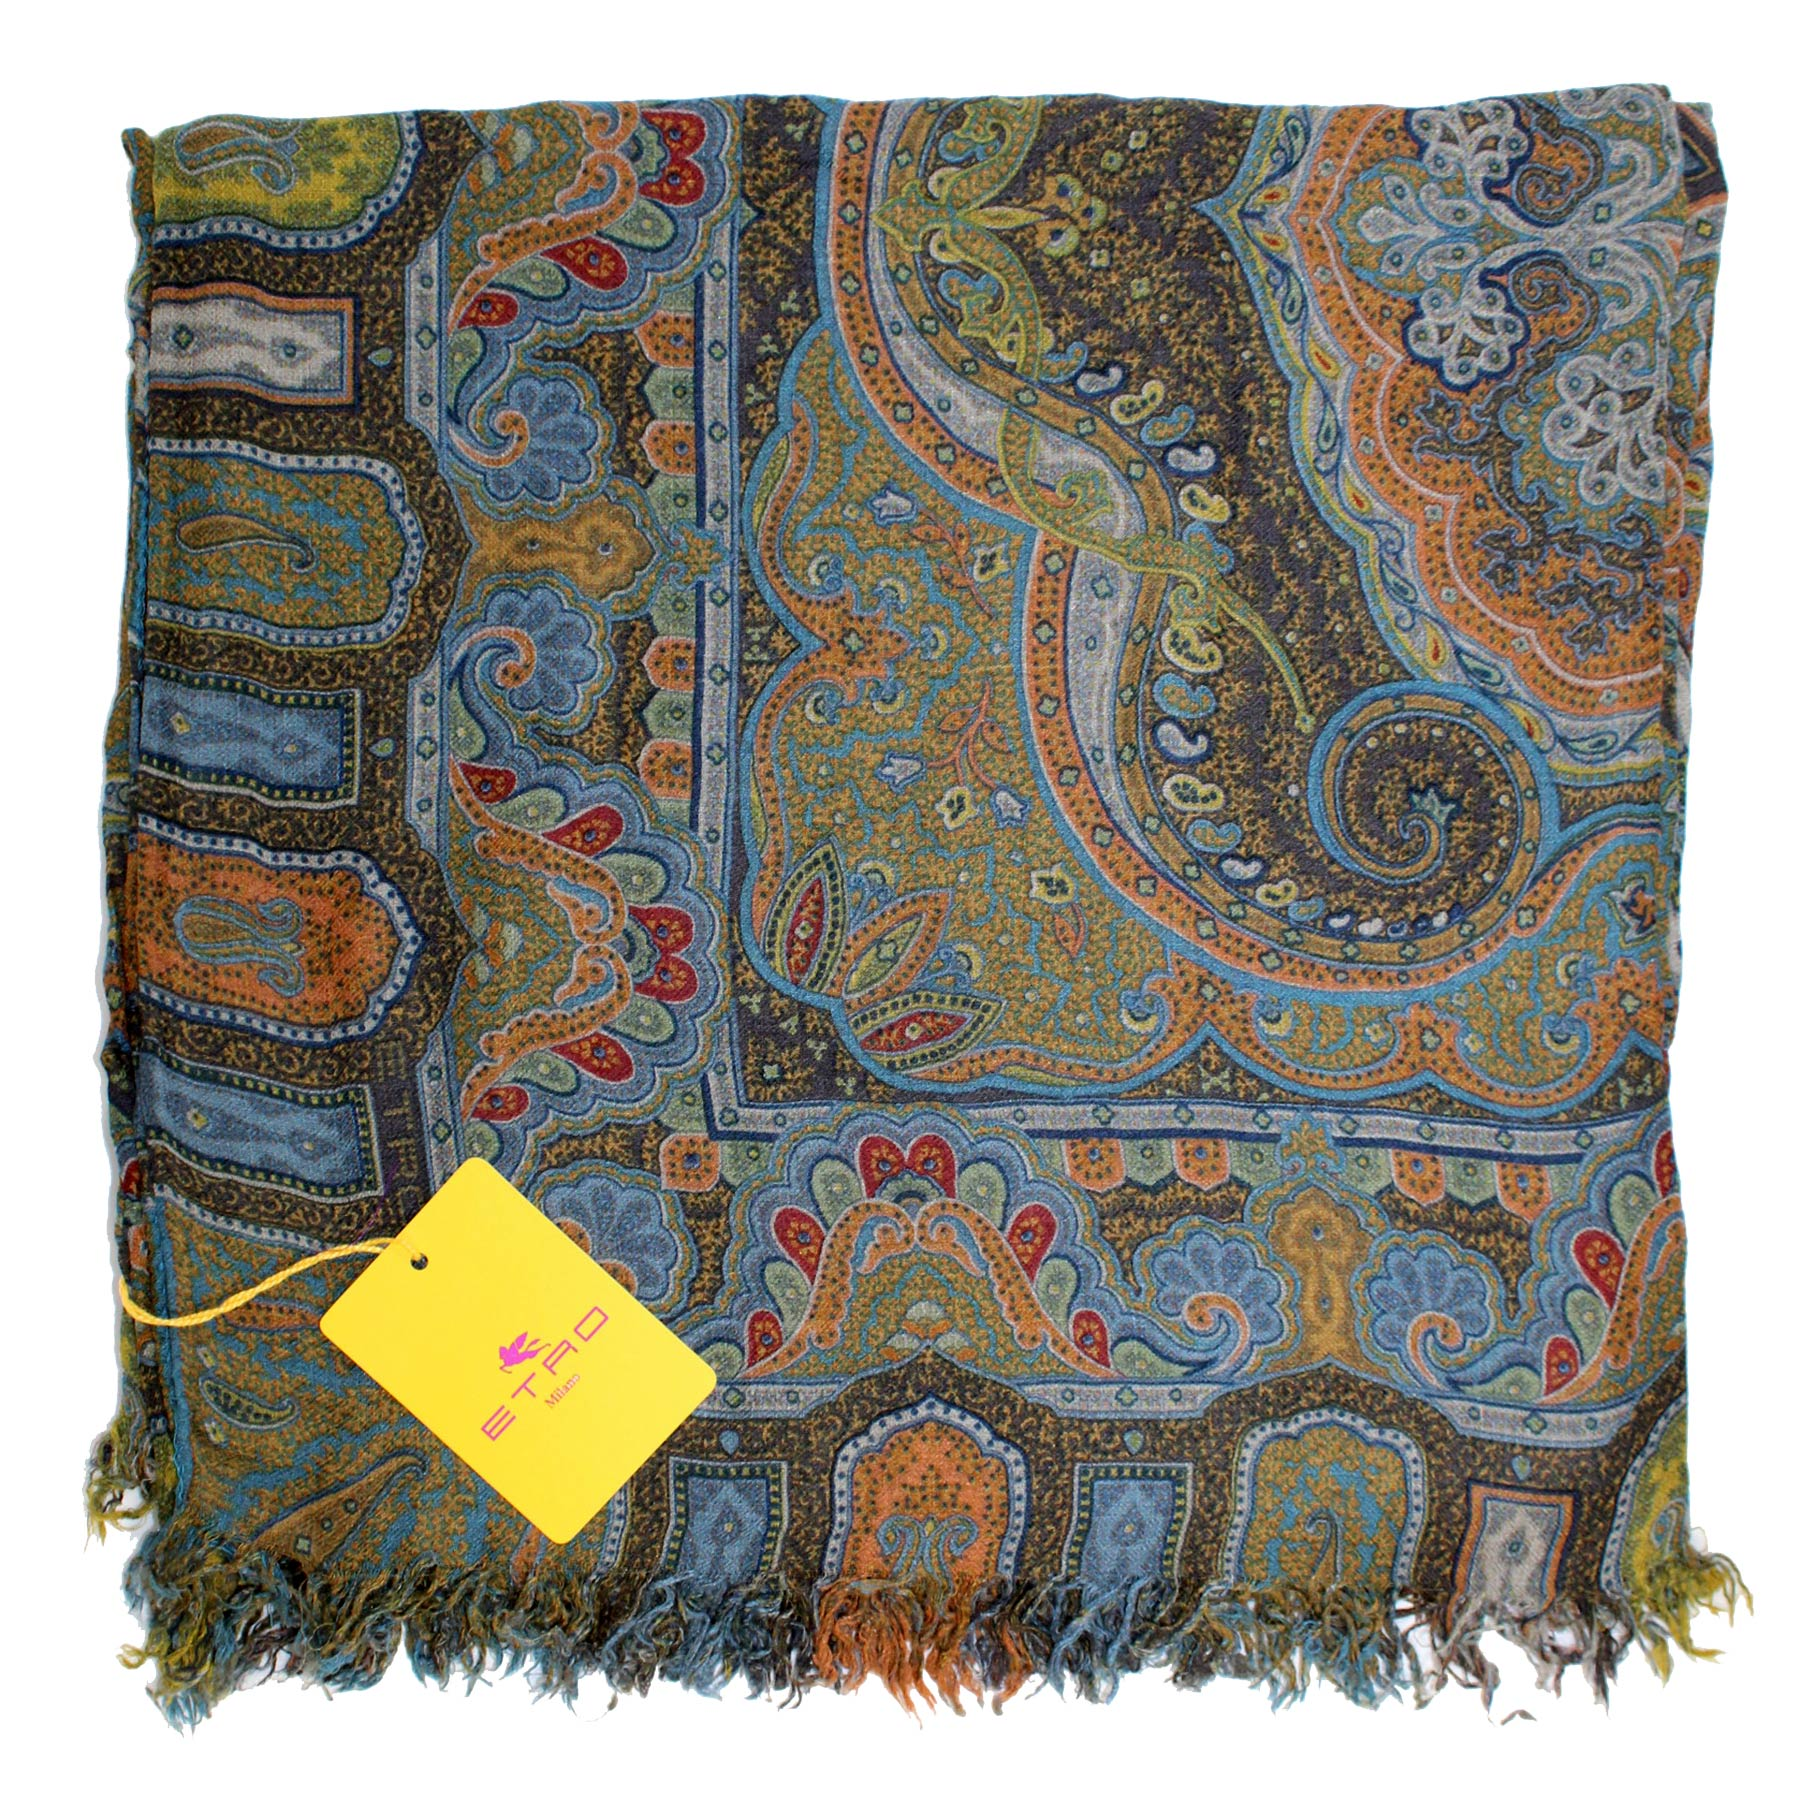 Etro Scarf Blue Green Brown Design New